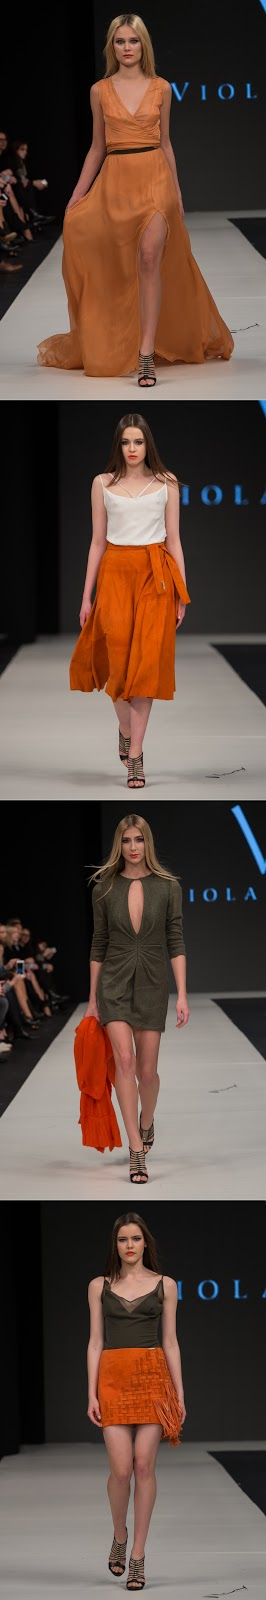 Viola Piekut XIII FashionPhilosophy Fashion Week Poland (c) 2015 Mike Pasarella